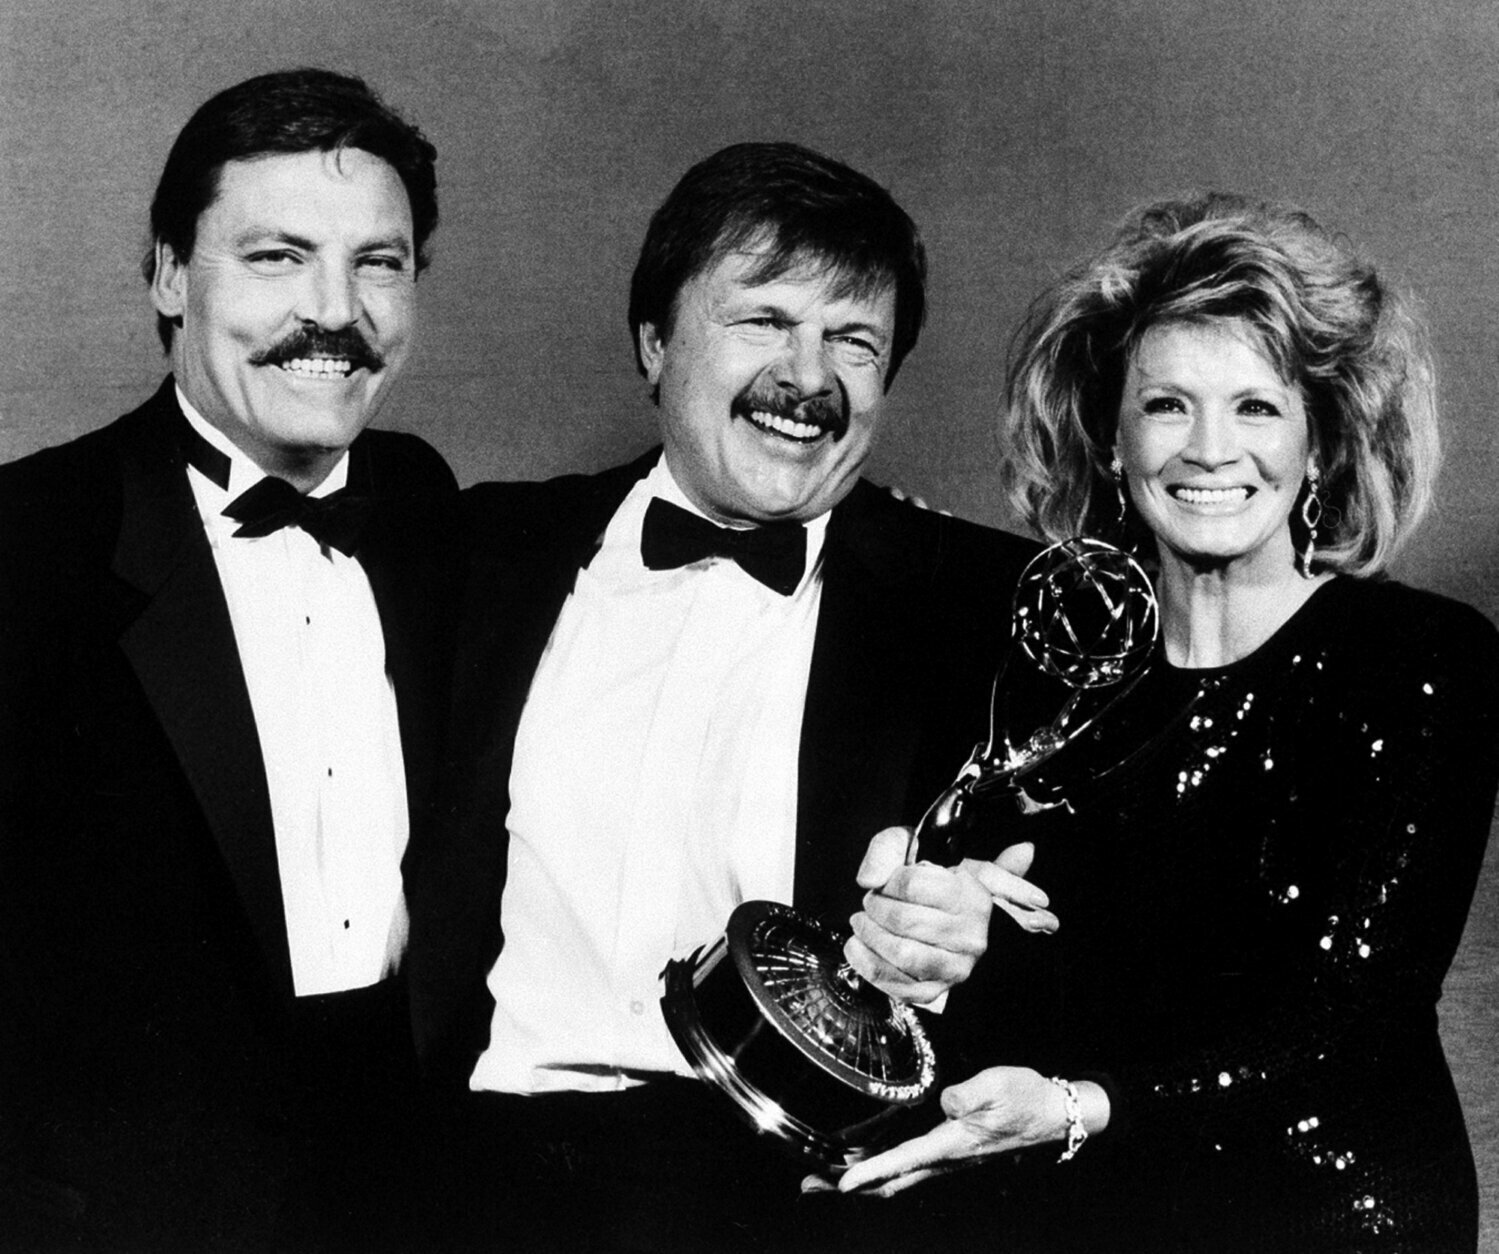 """FILE - This Sept. 21, 1986 file photo shows actor John Karlen, center, who portrays the husband of detective Mary Beth Lacey on the TV show """"Cagney & Lacey, """" posing with presenters Stacy Keach, left, and Angie Dickinson after Karlen won an Emmy for best supporting actor at the Emmy Awards in Pasadena, Calif.  Karlen, known for his roles on the television series """"Dark Shadows"""" and """"Cagney & Lacey,"""" died Wednesday, Jan. 22, 2020, of congestive heart failure in Burbank, Calif. He was 86. (AP Photo/Douglas C. Pizac, File)"""